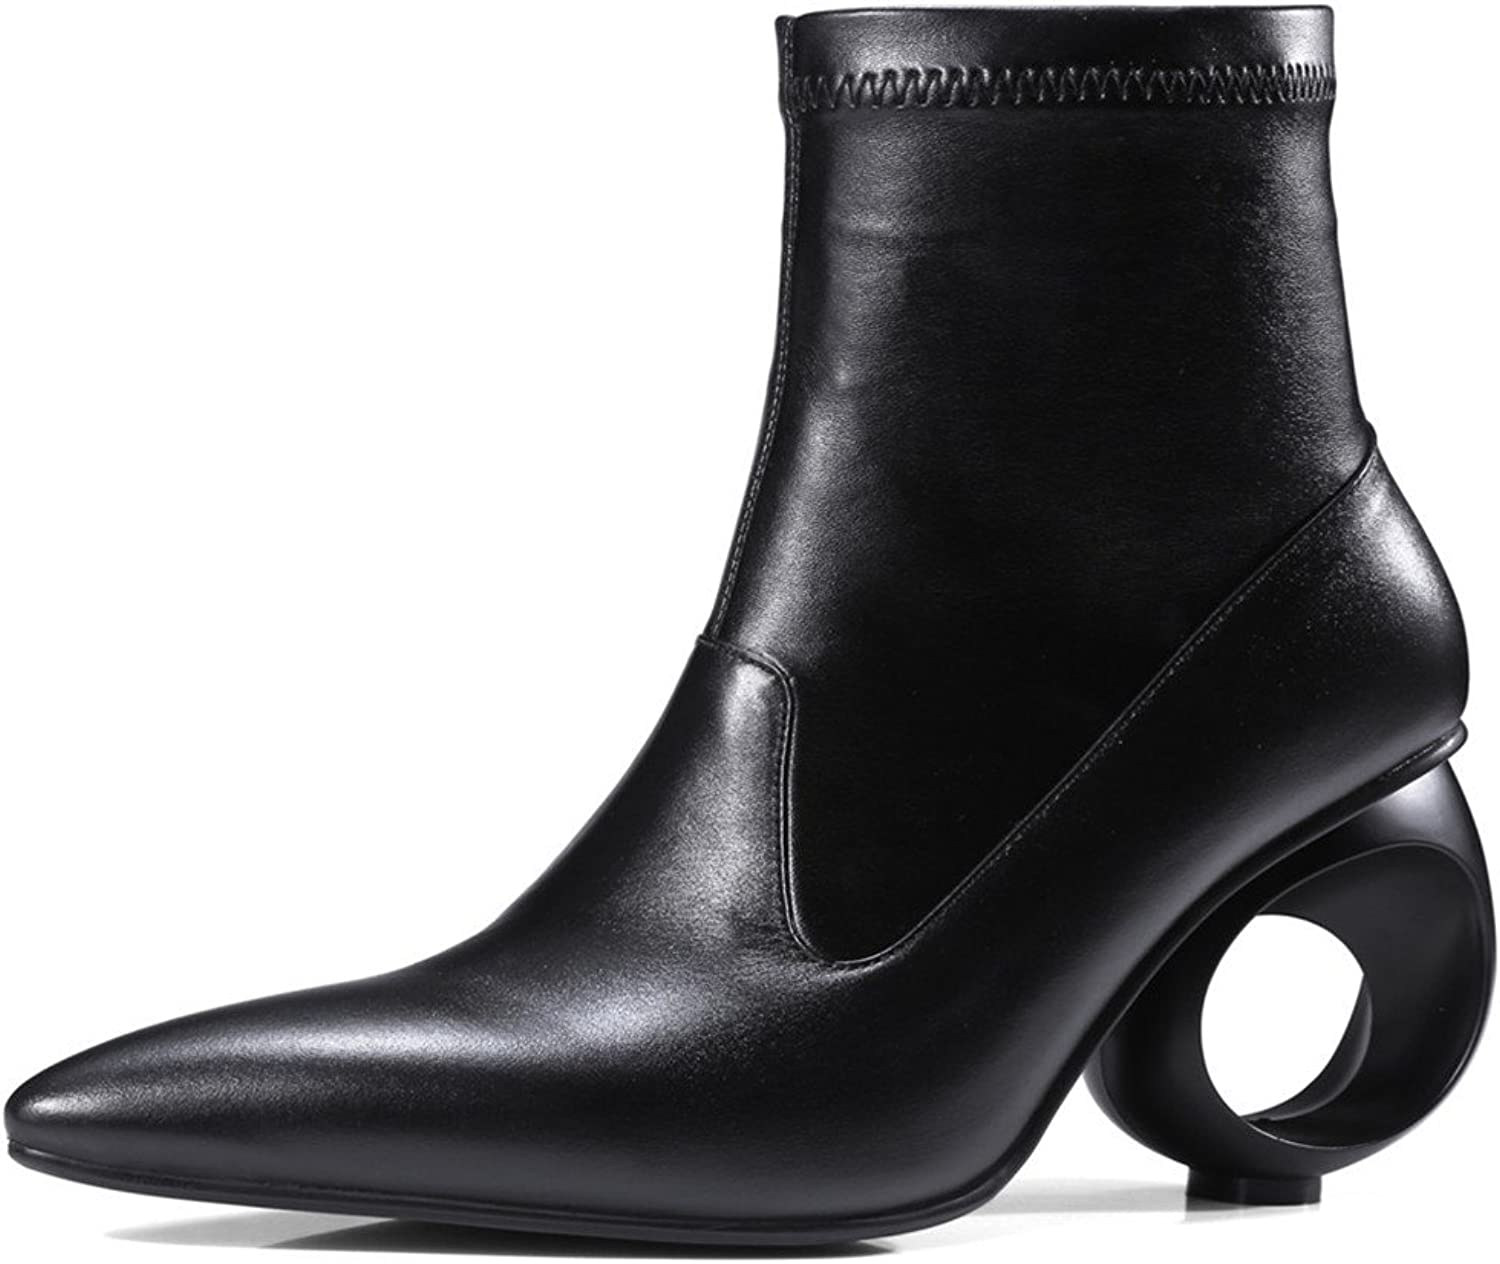 Nine Seven Genuine Leather Women's Pointed Toe Fashion Exquisite Heel Handmade Well Designed Ankle Boots